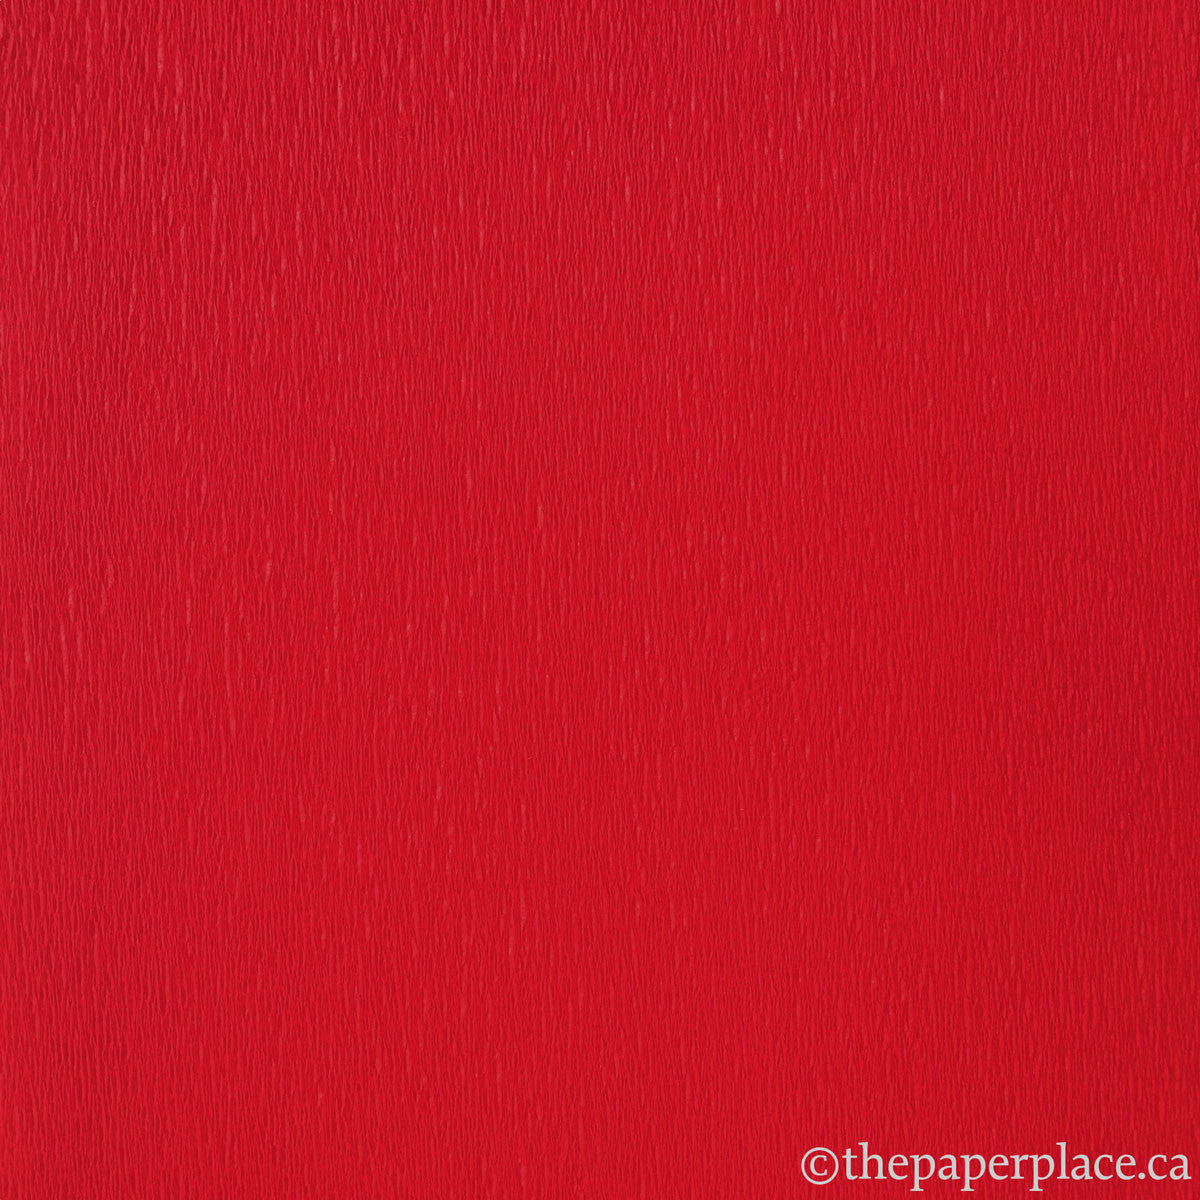 Single-Sided Crepe - Flame Red